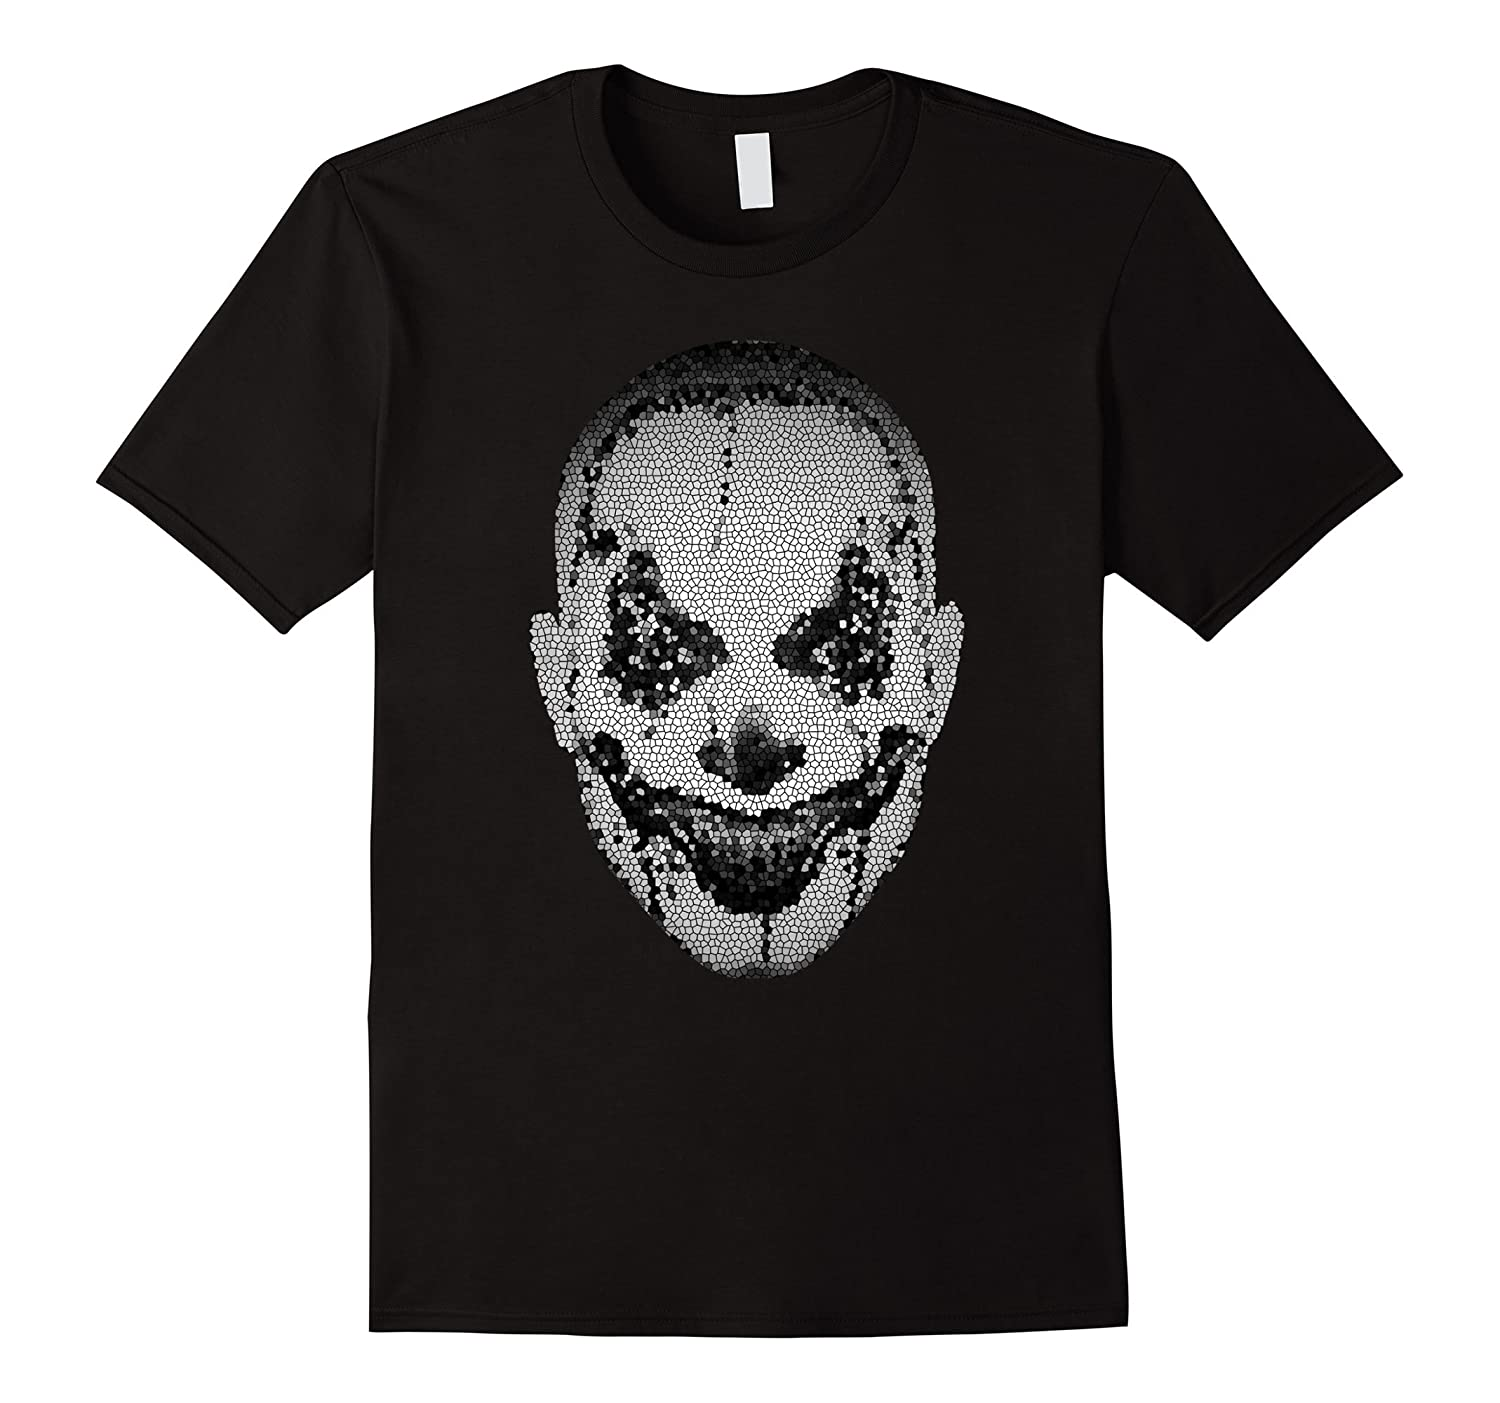 Creepy Scary Clown T-Shirt Horror Fan Halloween Costume-TJ